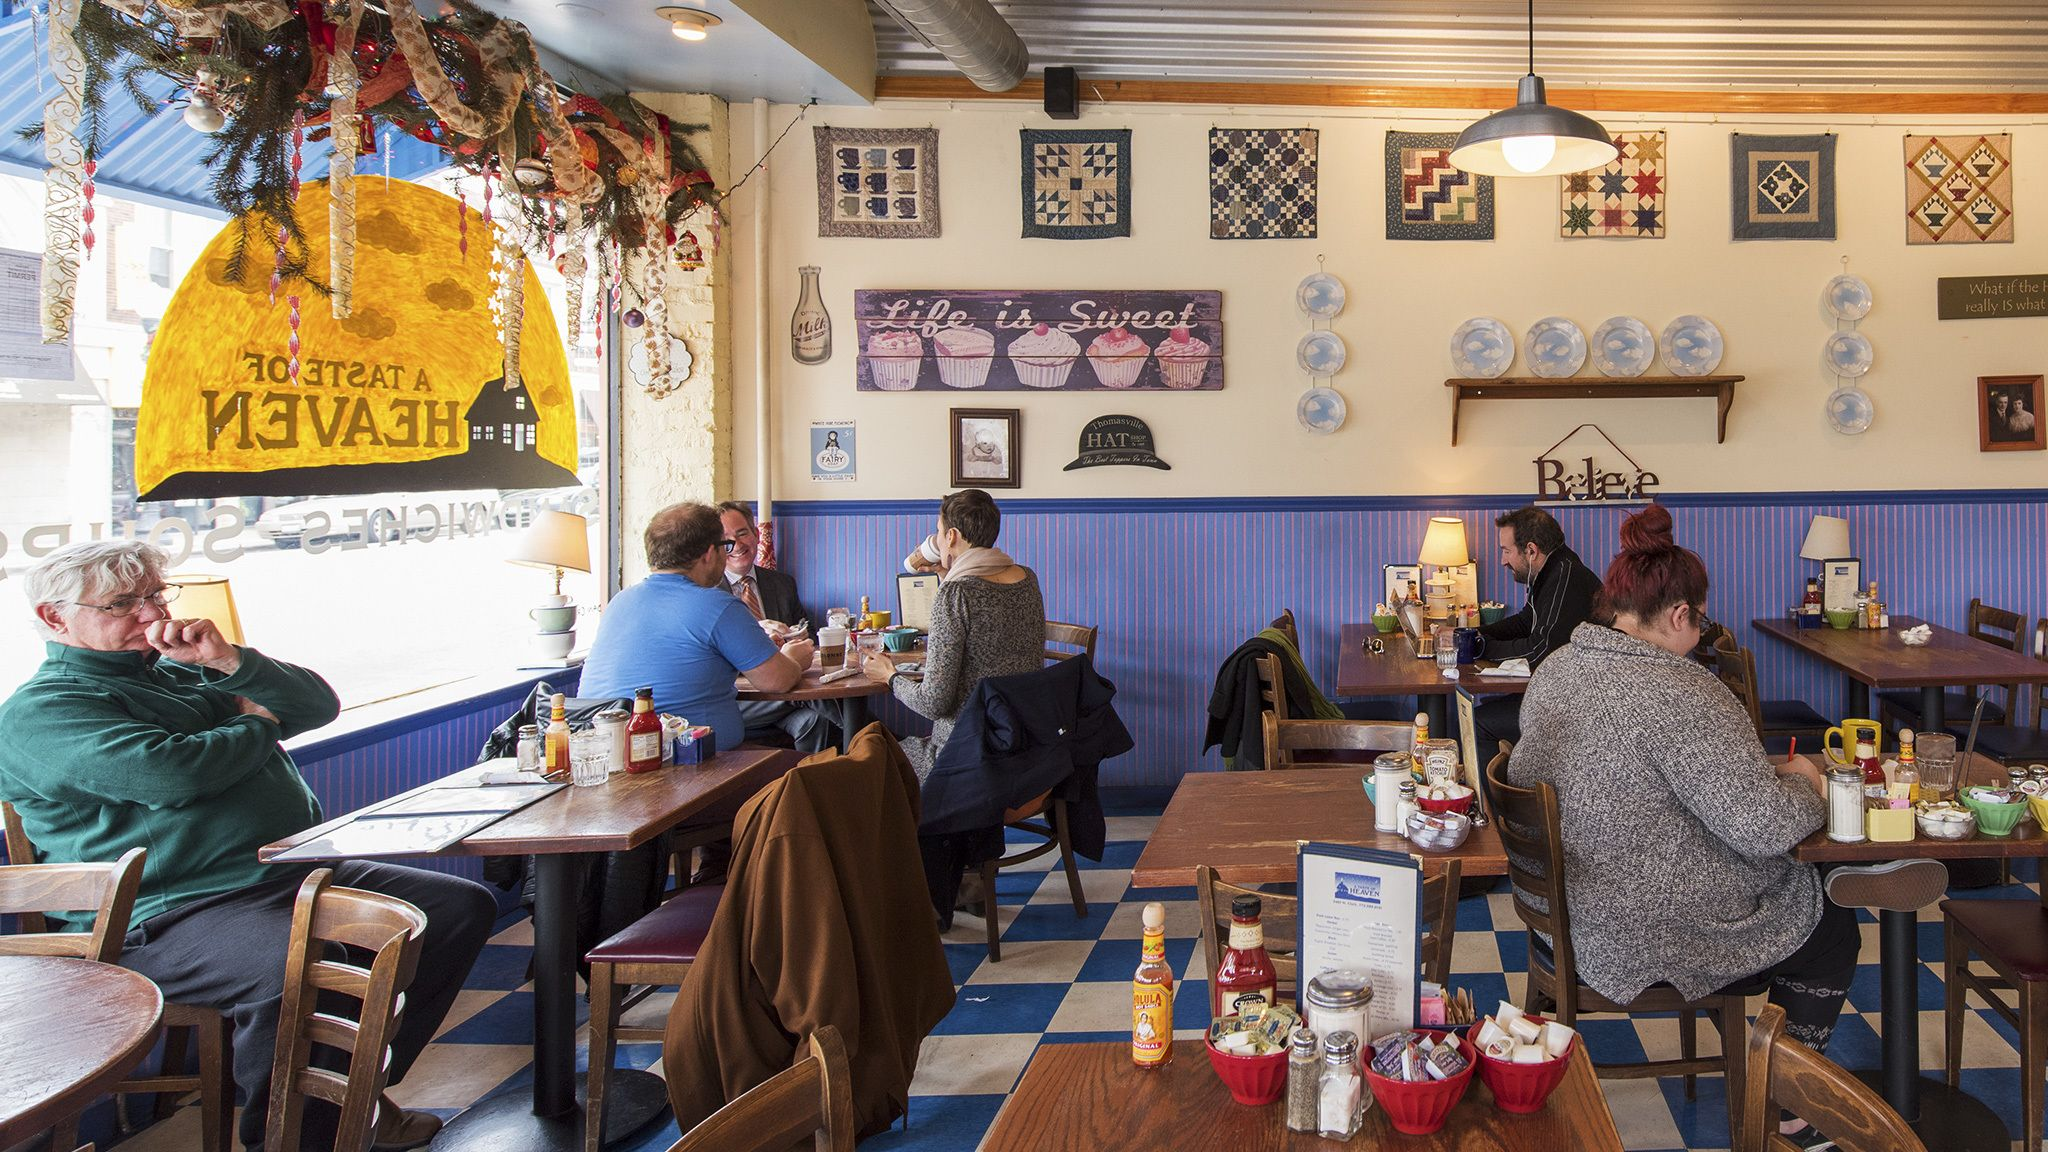 Notable Andersonville residents shared their favorite spots in the neighborhoods with Time Out Chicago